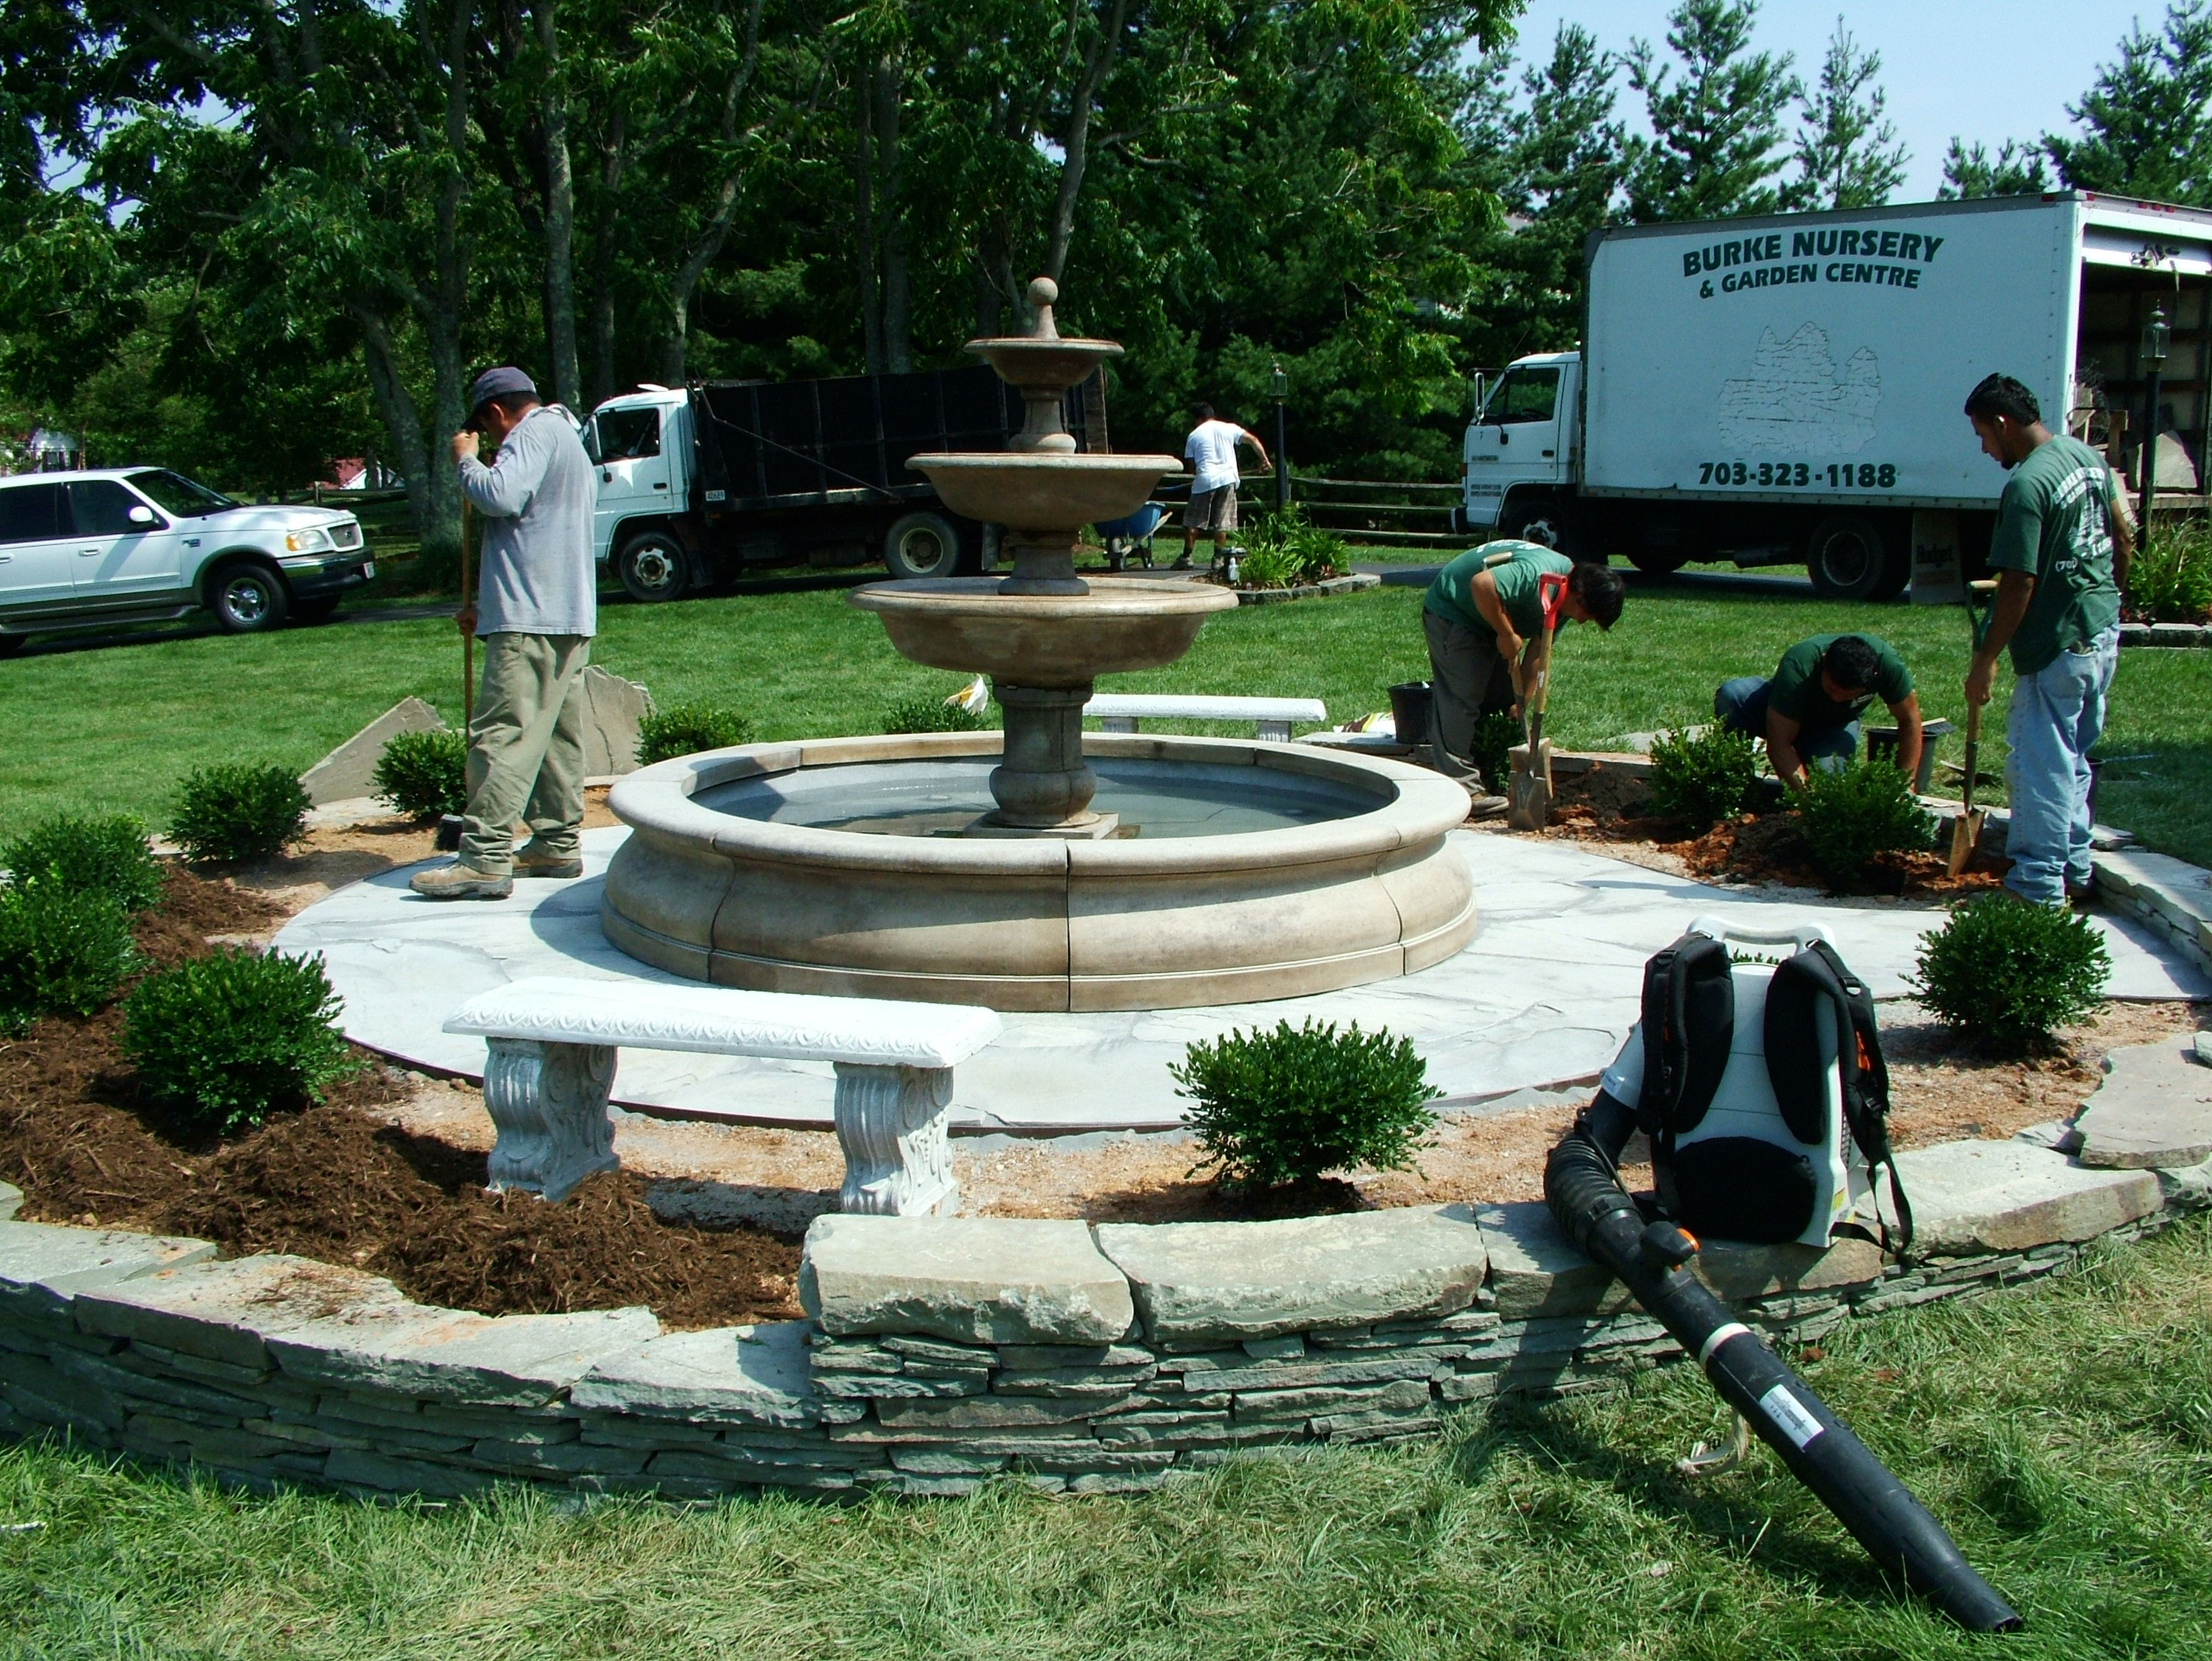 Installing Plants Around the Fountain